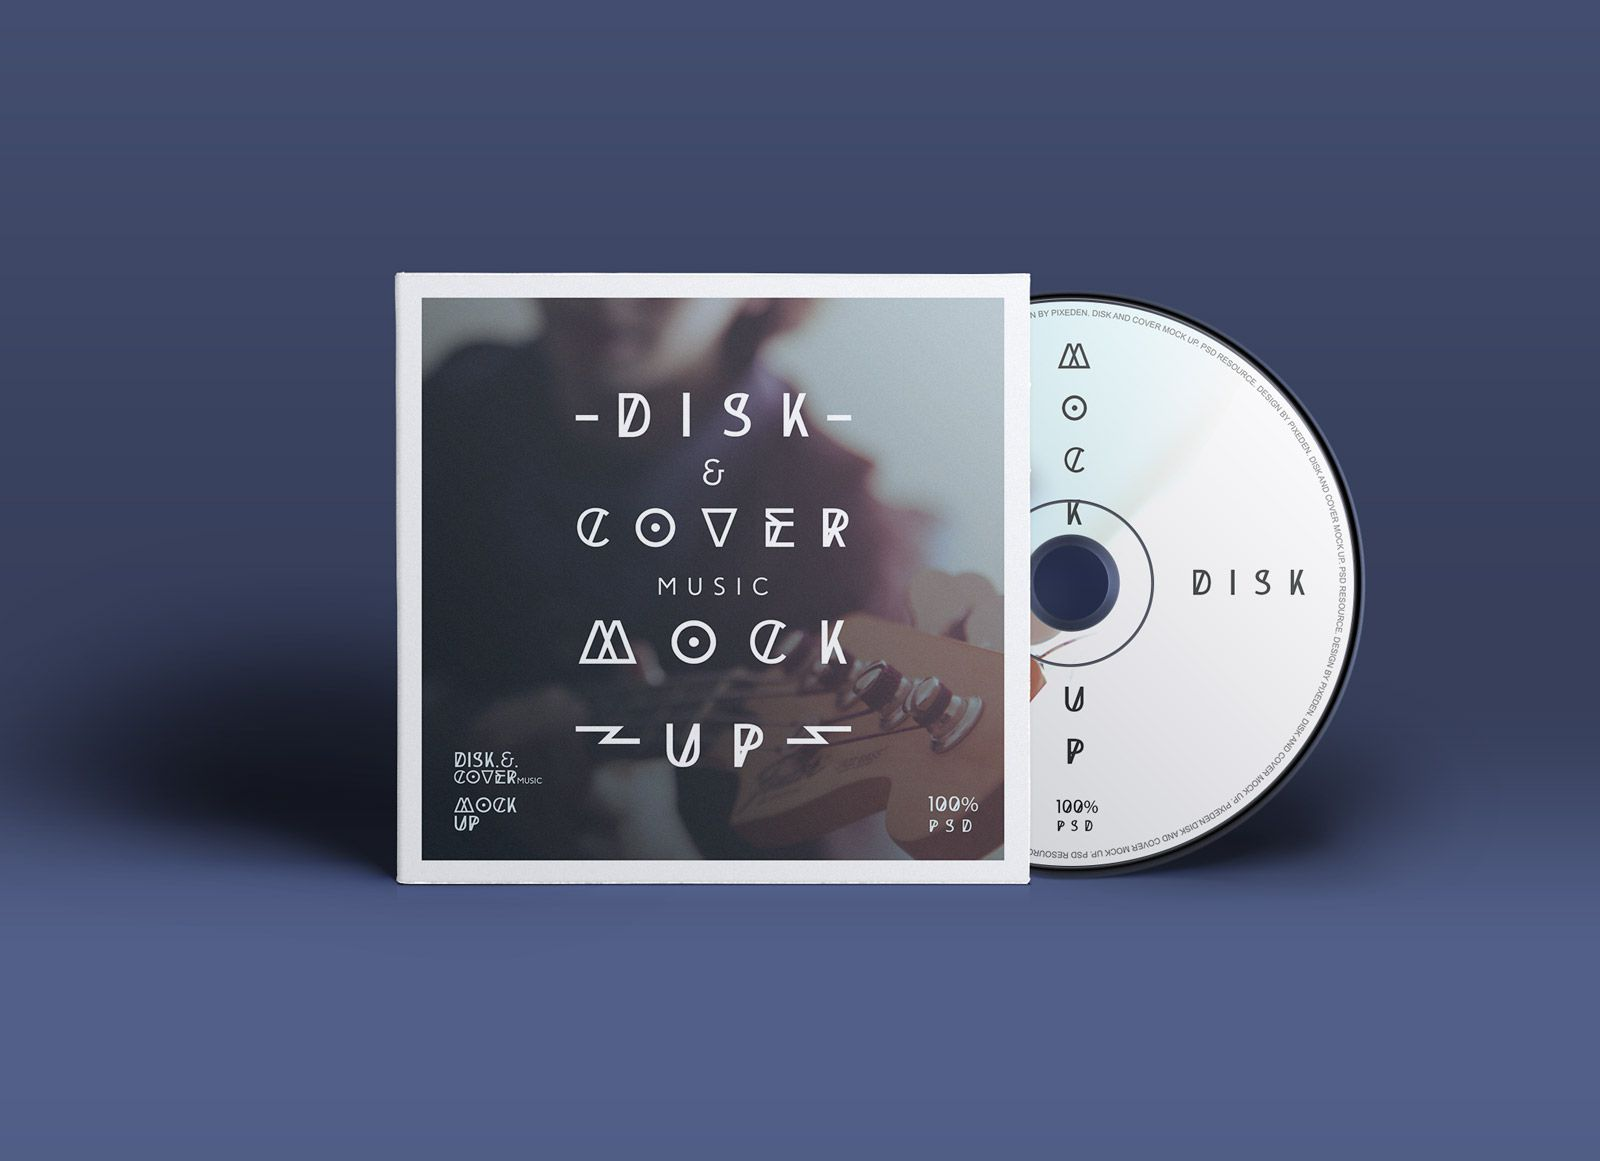 005 Impressive Free Cd Cover Design Template Photoshop Highest Clarity  Label Psd DownloadFull